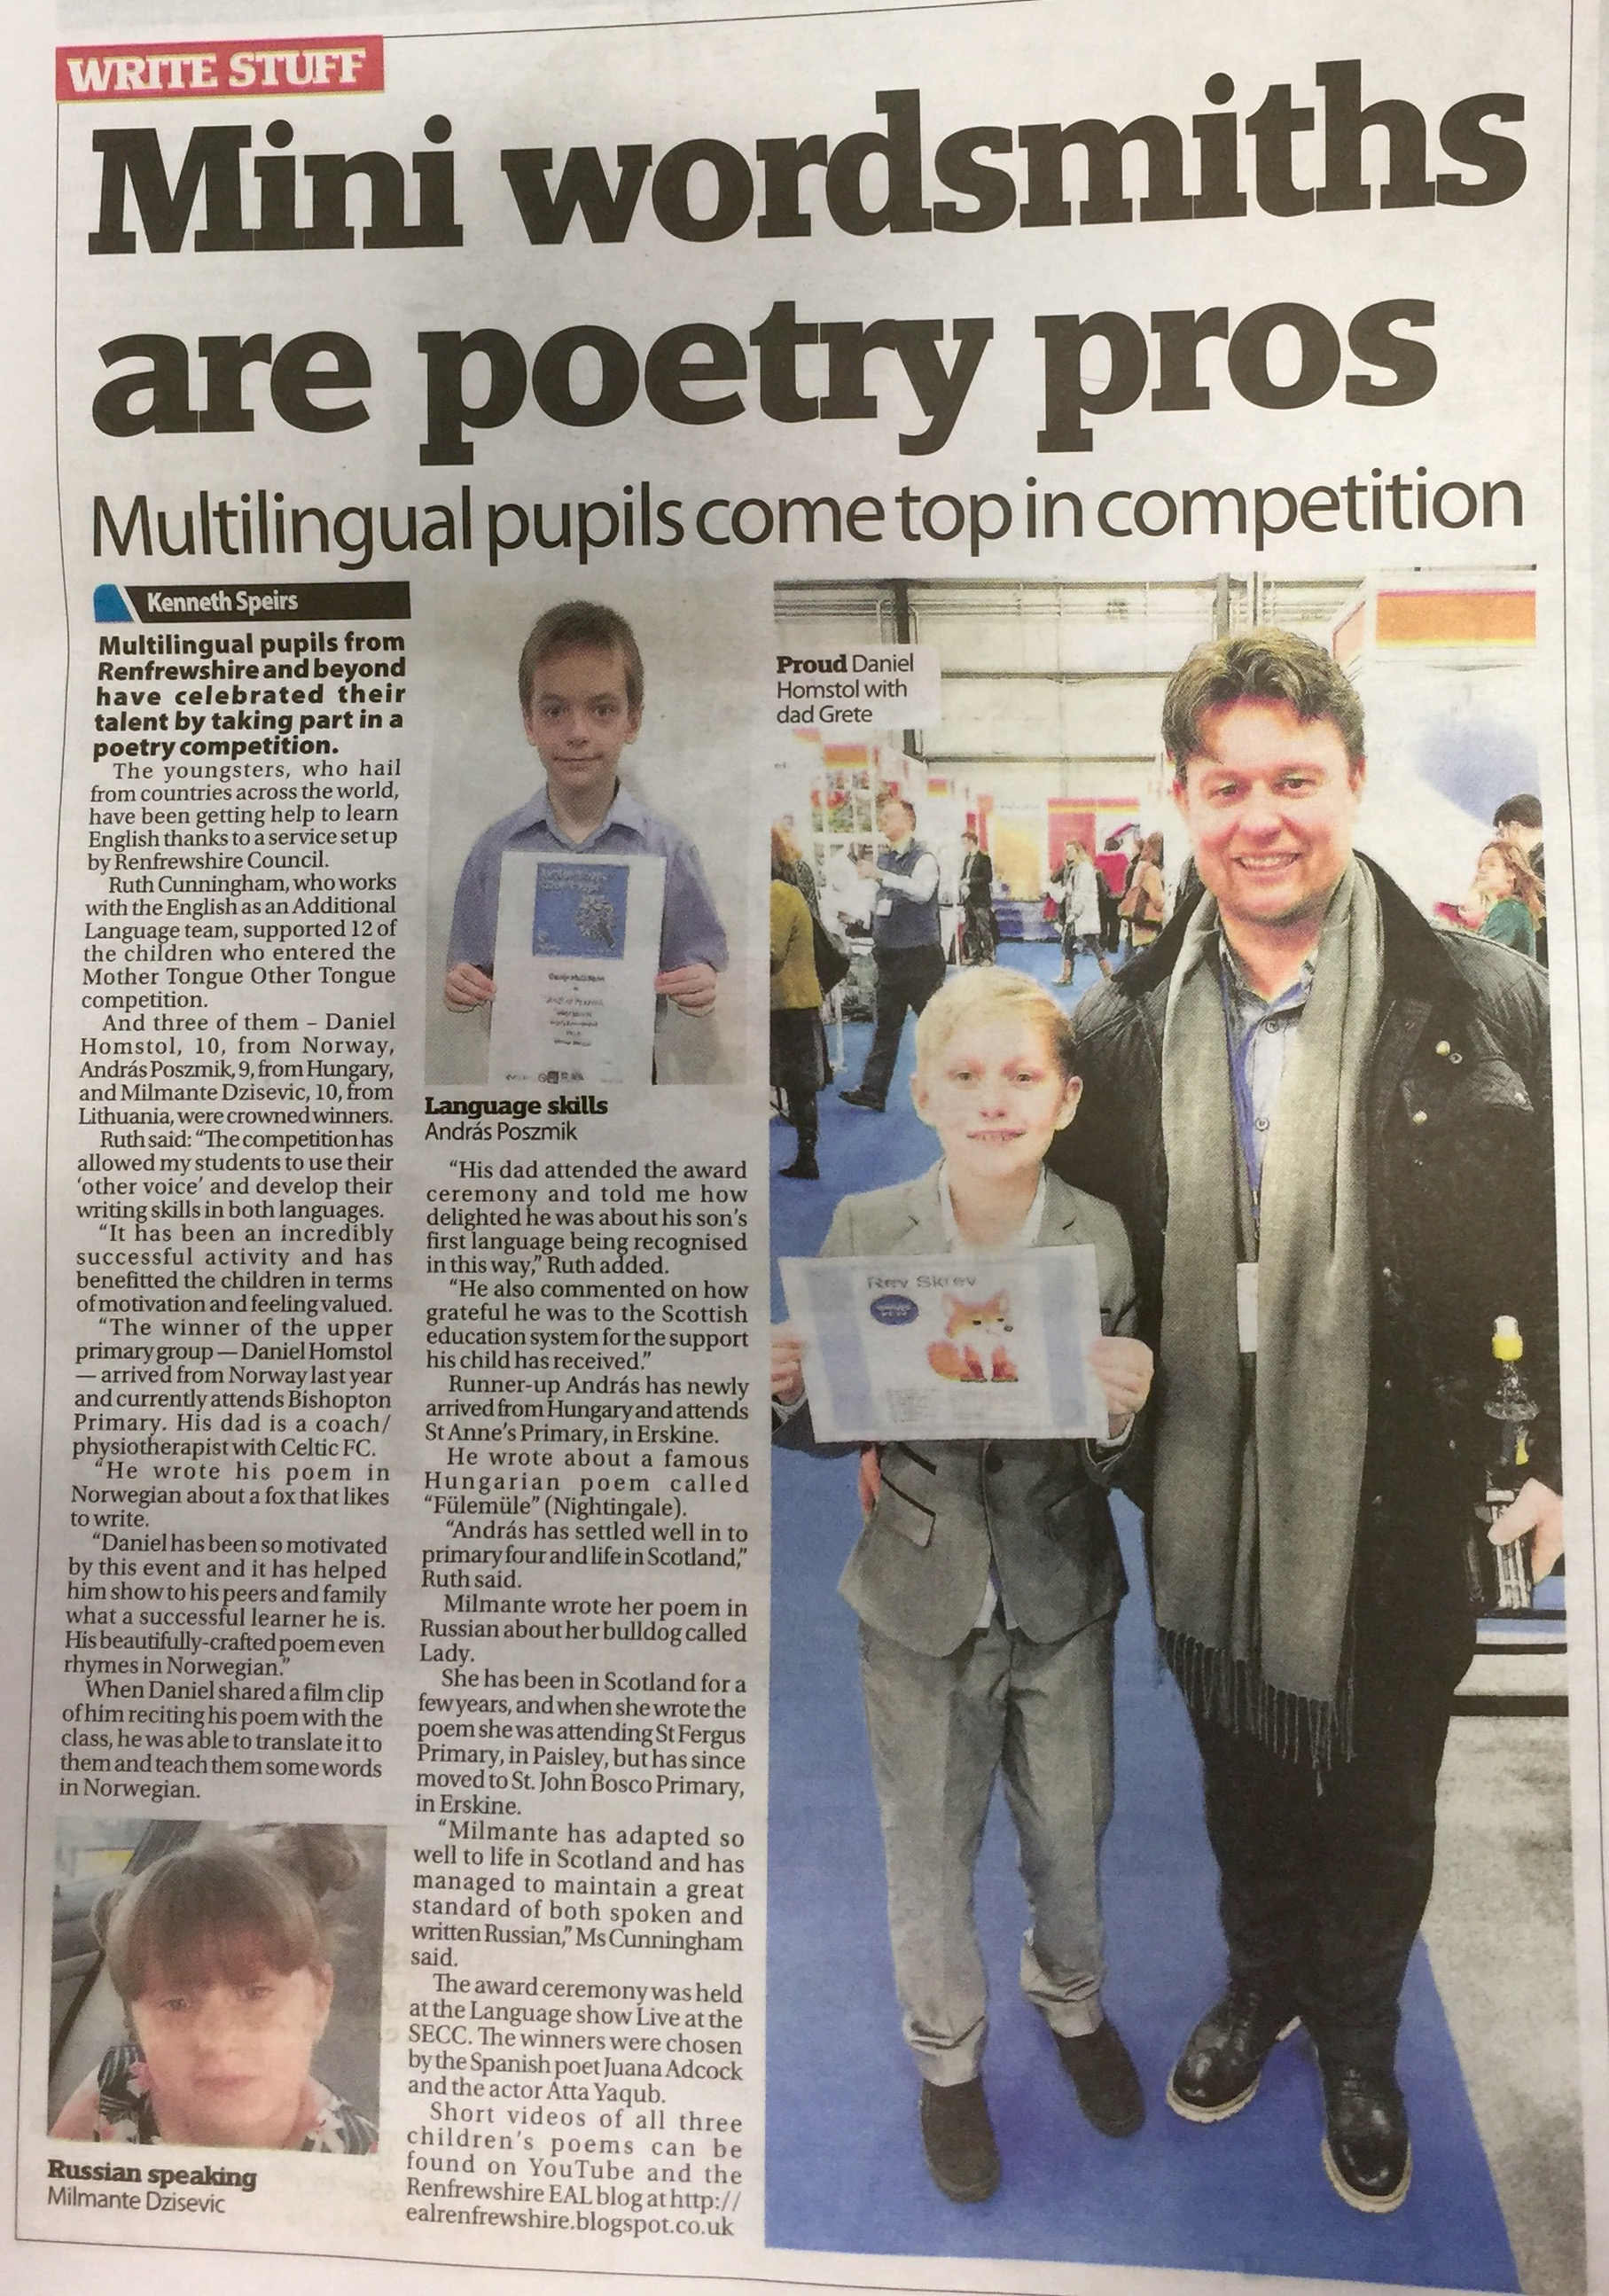 Mini wordsmiths are poetry pros - Paisley Daily Express 19-03-16